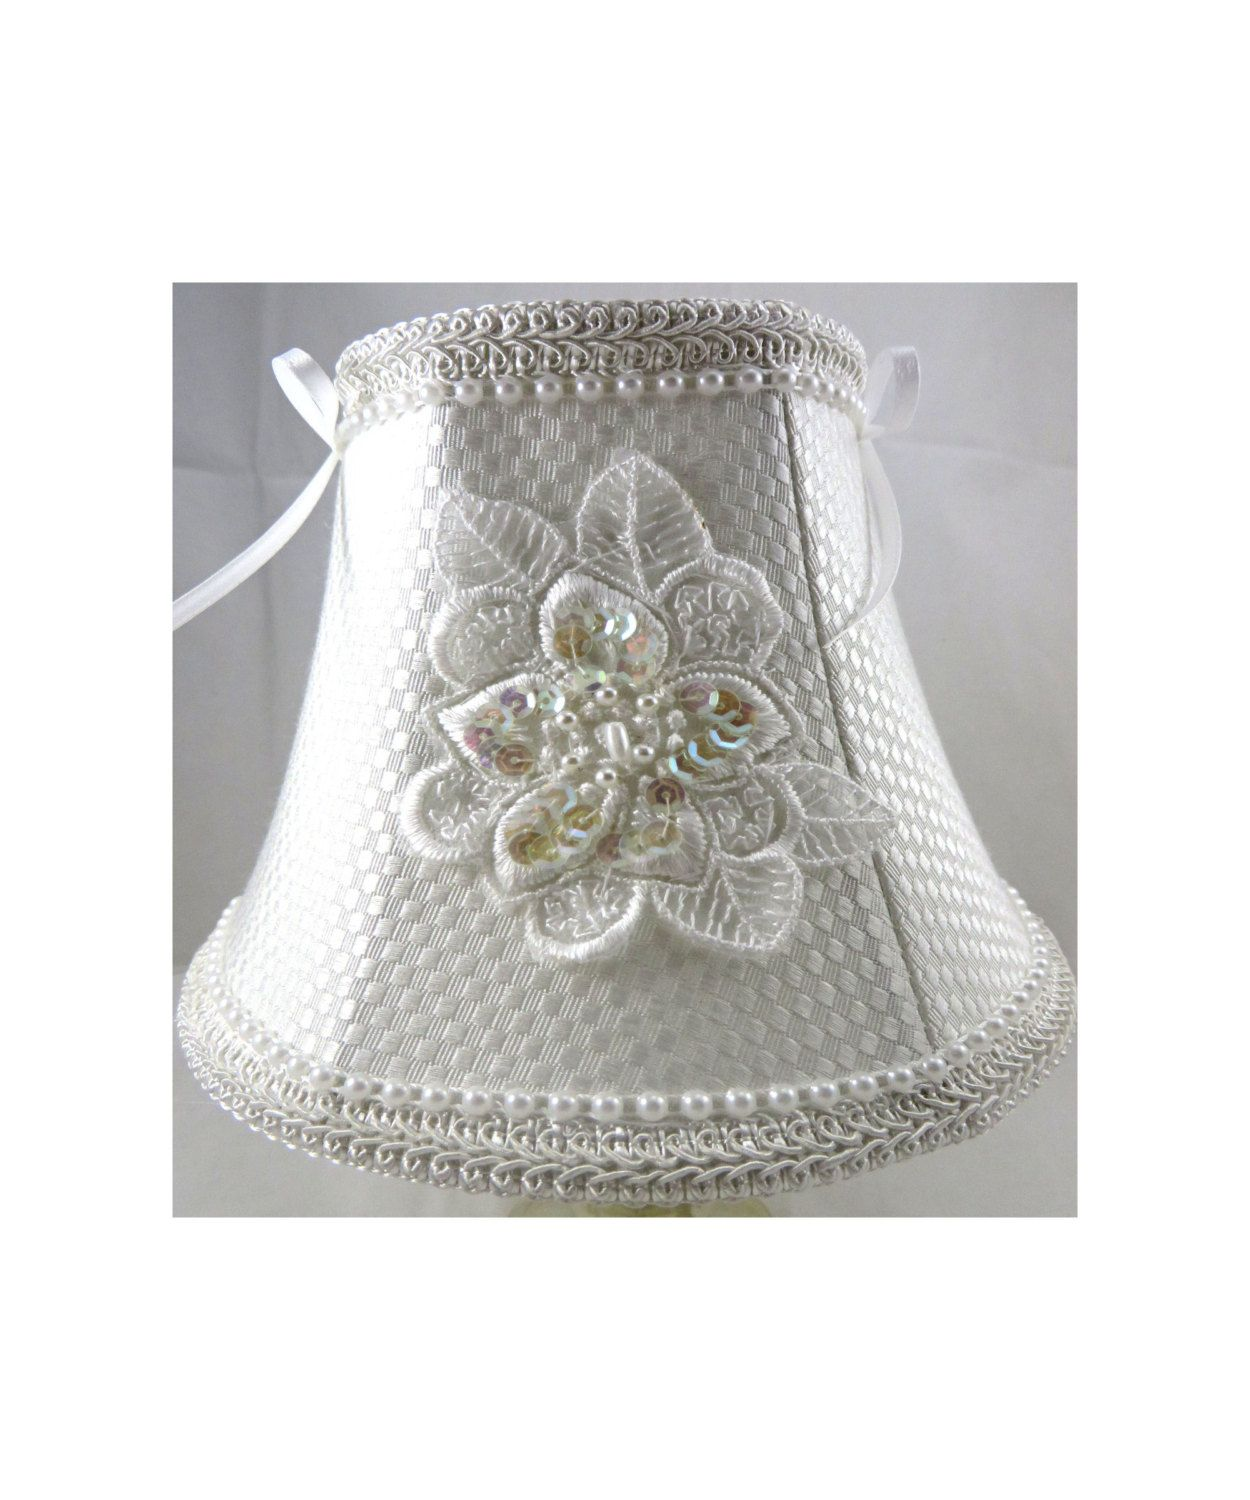 Lampshade Home Decor Small Lampshade Small Bell Lamp Shade Silk Lampshade Chandelier Shade Jacquard Material Kreativ Es Ajandekok